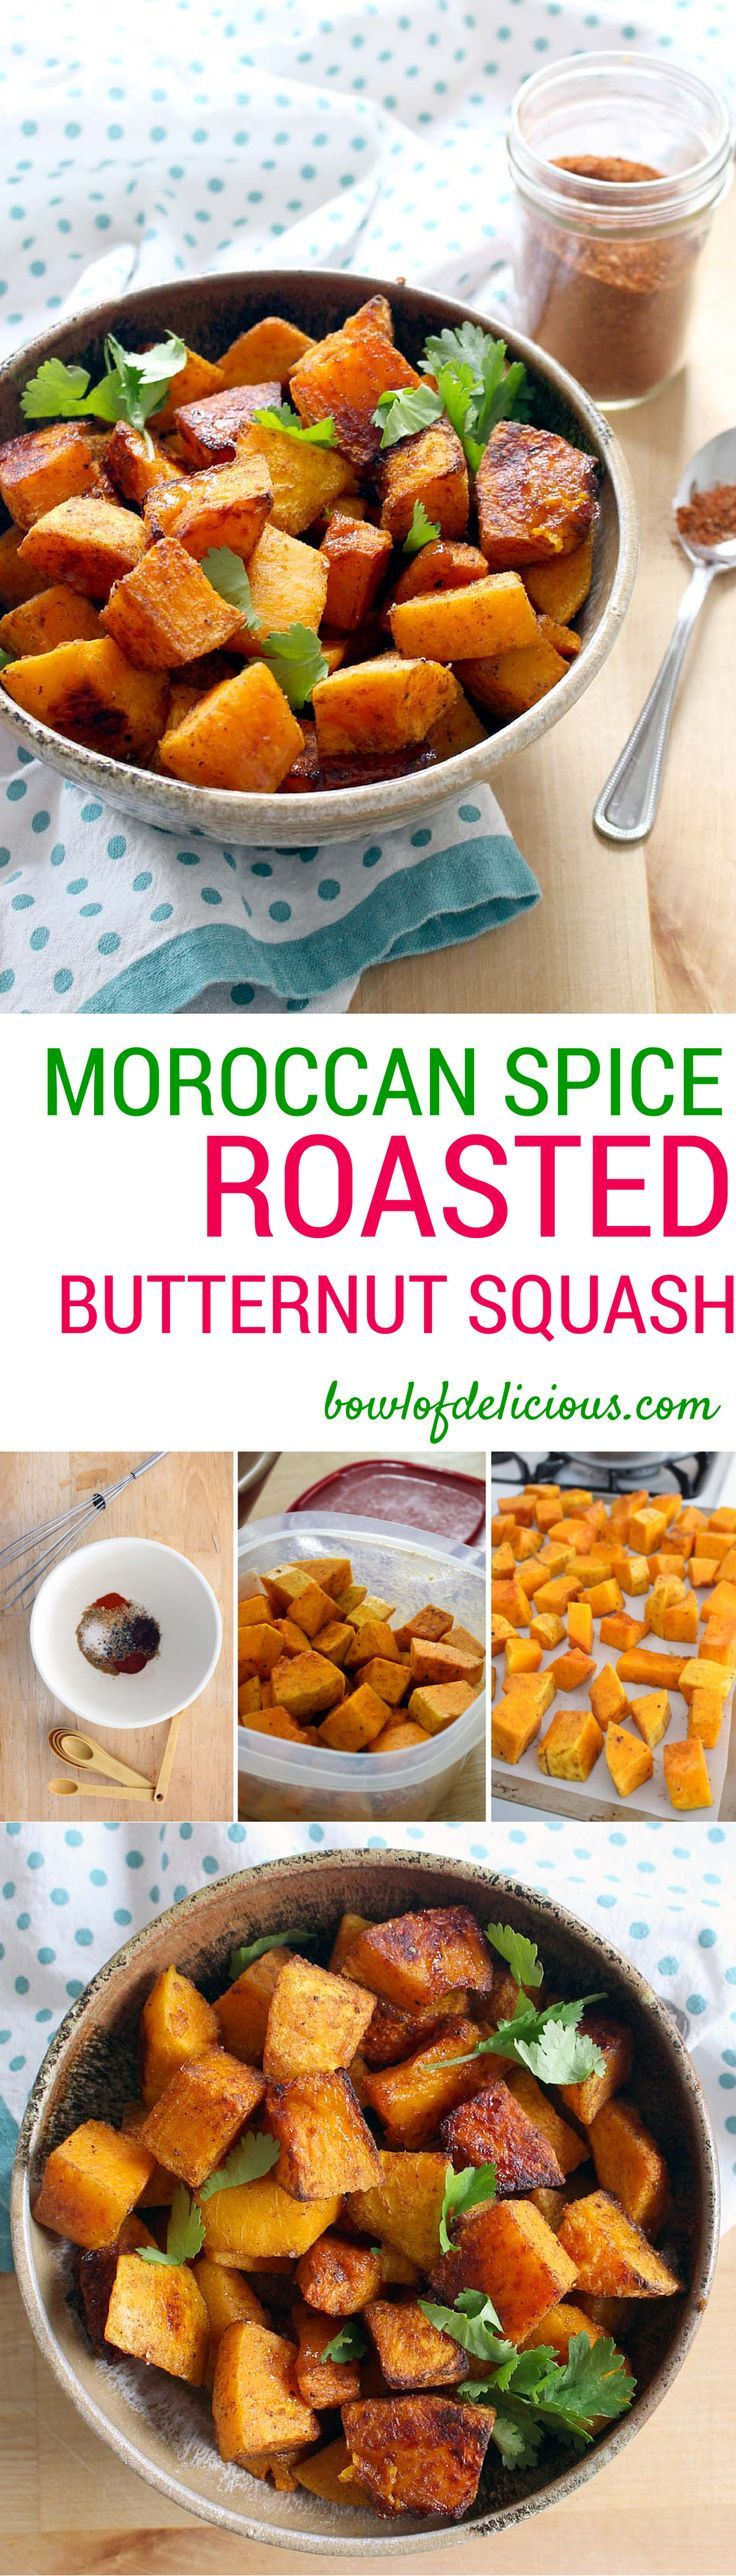 This Morrocan Spice Roasted Butternut Squash is the perfect vegetable side! It's quick, easy, and delicious from the unique Moroccan spice blend Ras el Hanout. Try making soup out of the leftovers! Gluten Free, Whole30, Paleo, Healthy, Real Food, Clean Eating